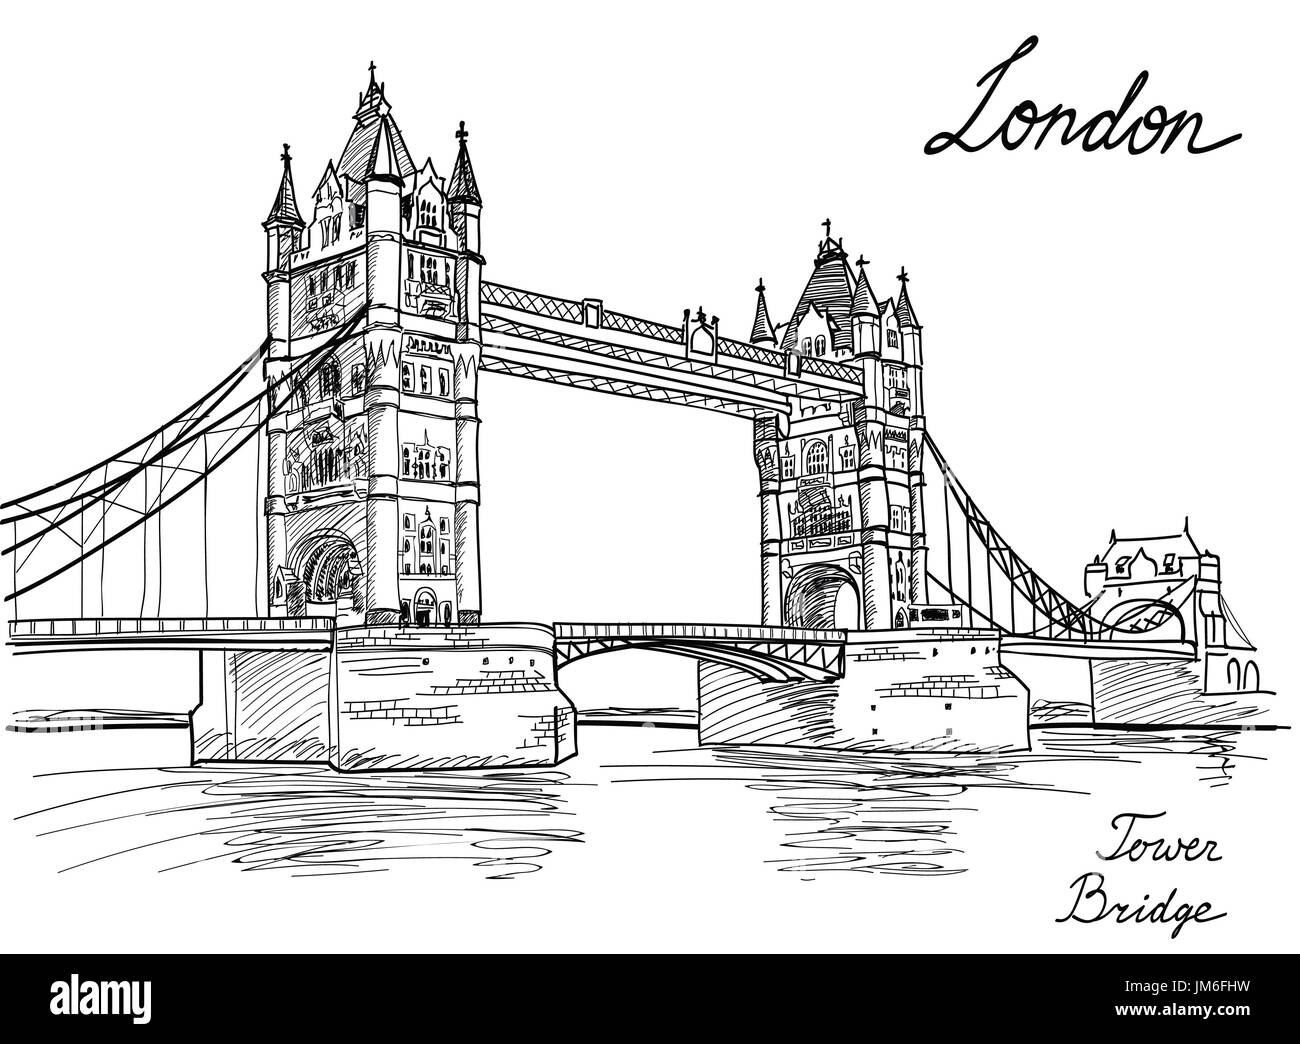 tower bridge london england uk europe hand drawing old fashion illustration background with copy space